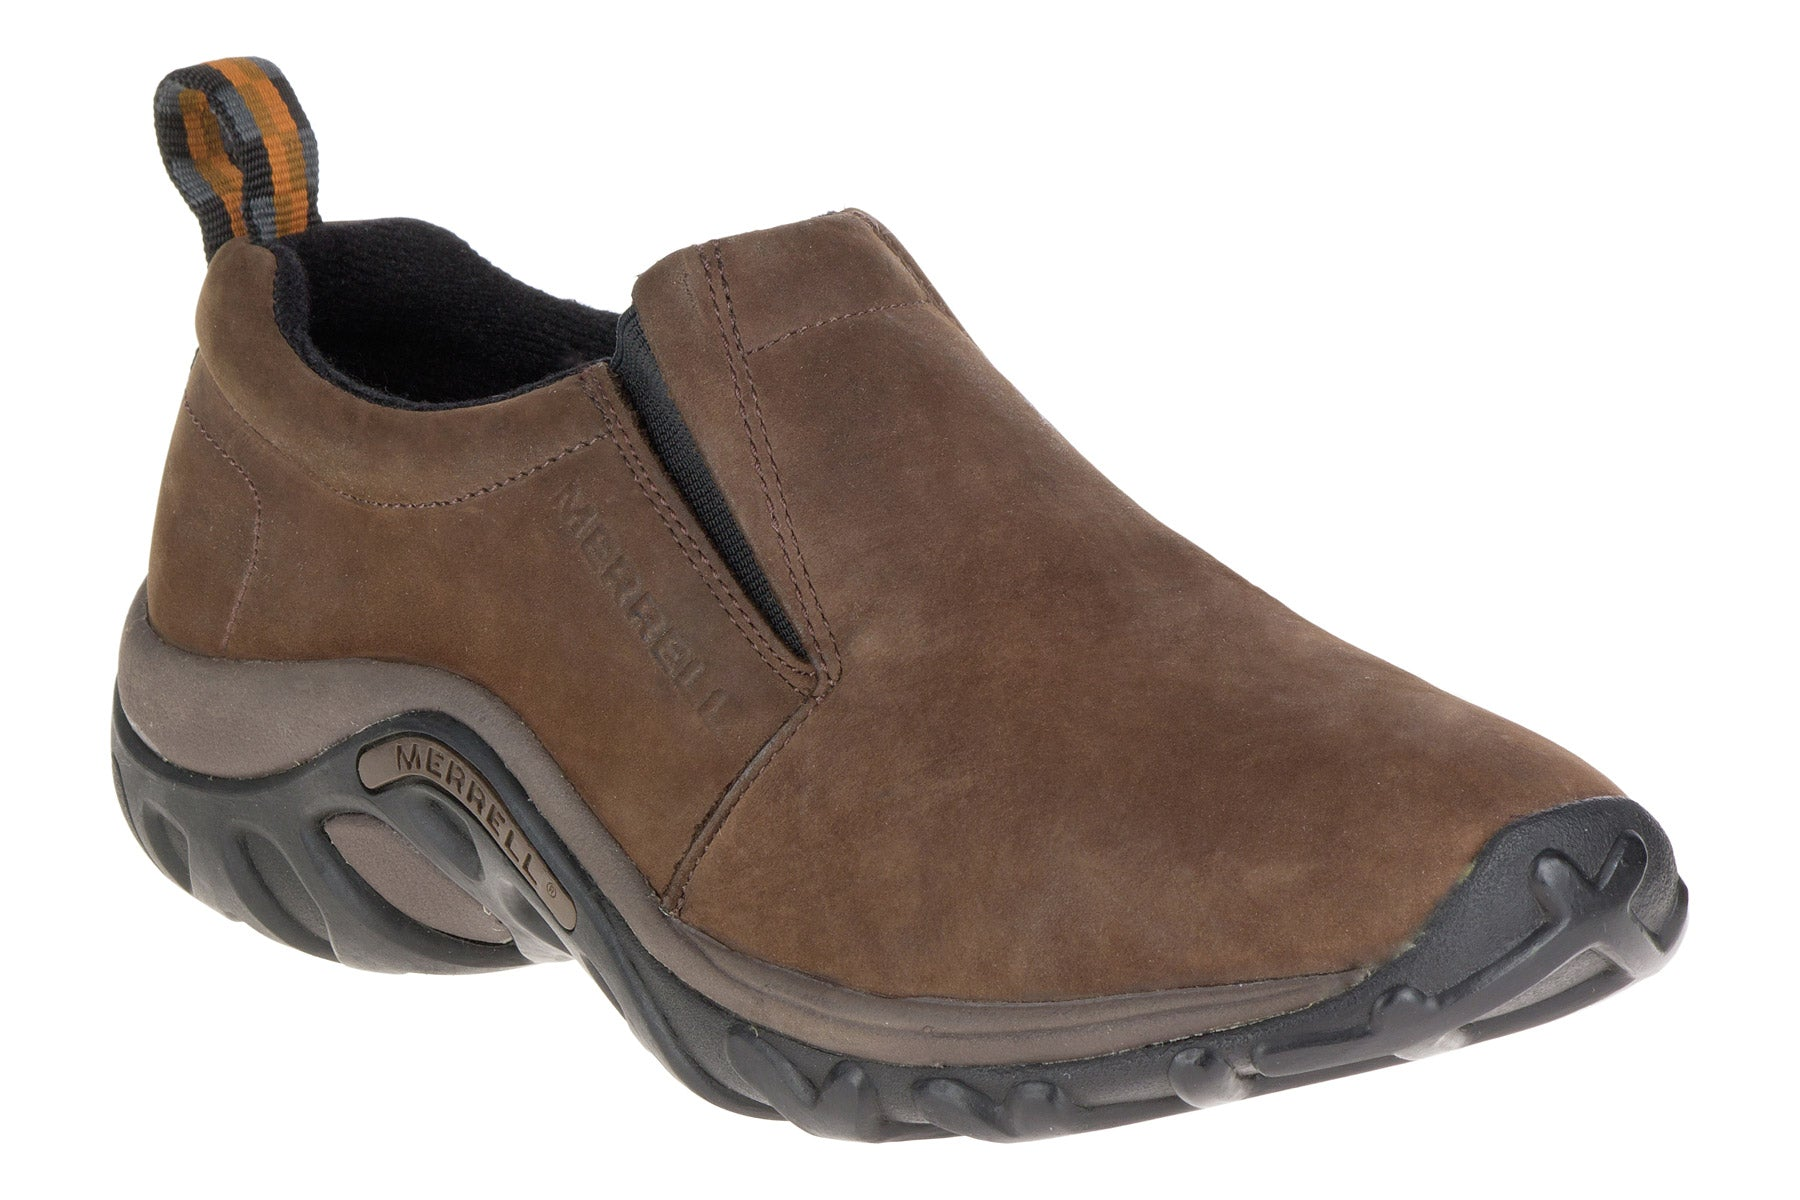 merrell mens jungle moc casual shoes - brown analysis